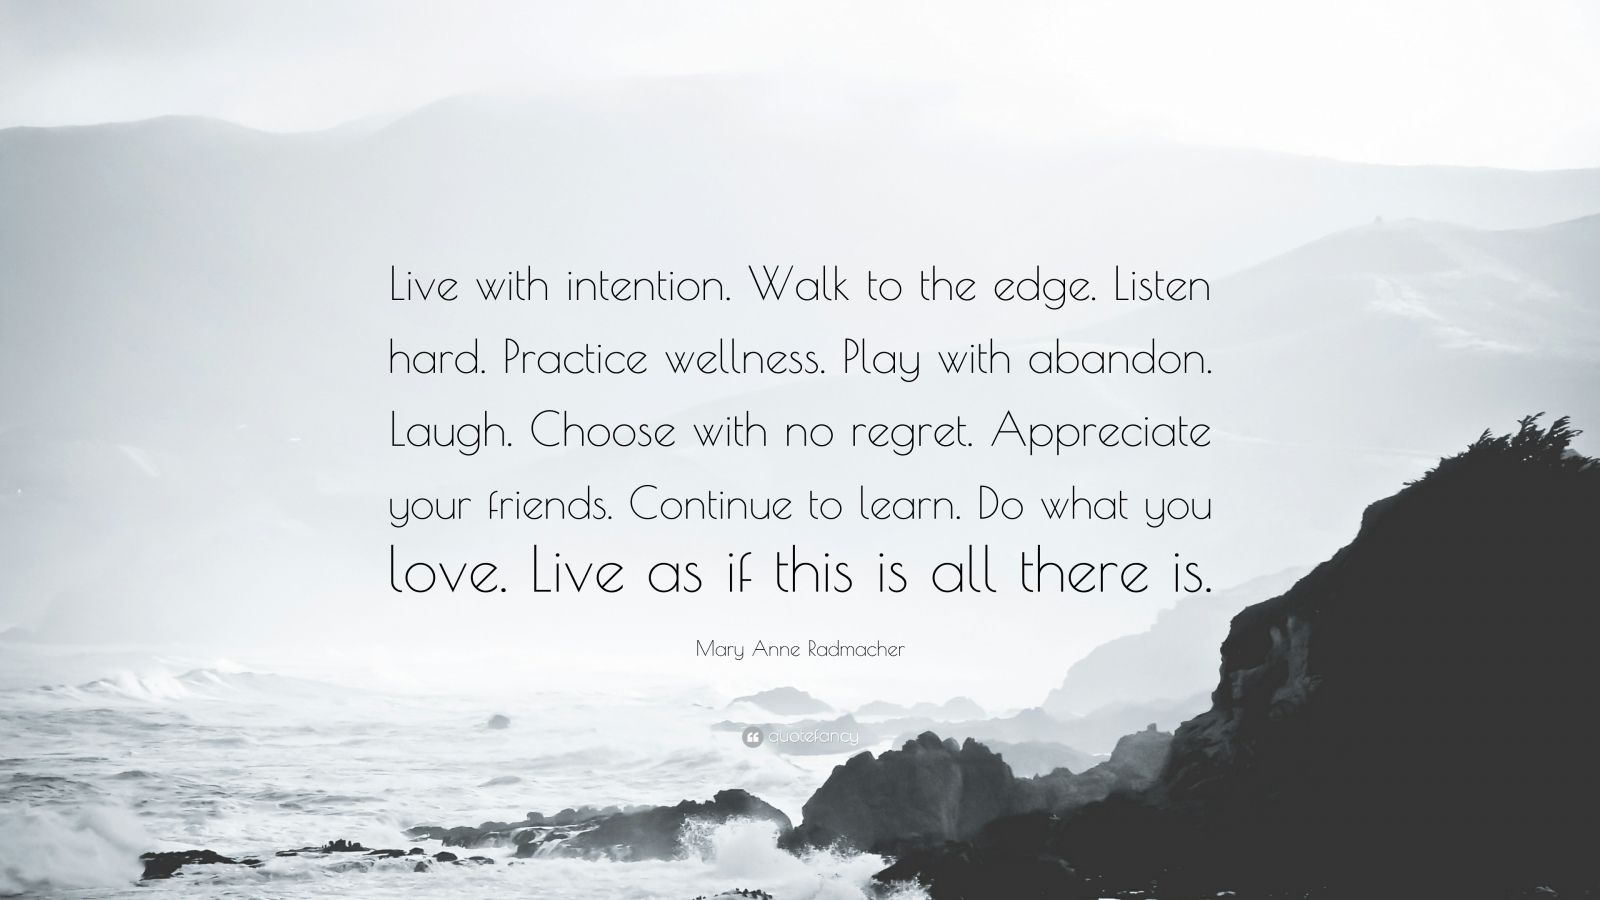 """Mary Anne Radmacher Quote: """"Live with intention. Walk to the edge. Listen hard. Practice wellness. Play with abandon. Laugh. Choose with no regret. Appreciate your friends. Continue to learn. Do what you love. Live as if this is all there is."""""""